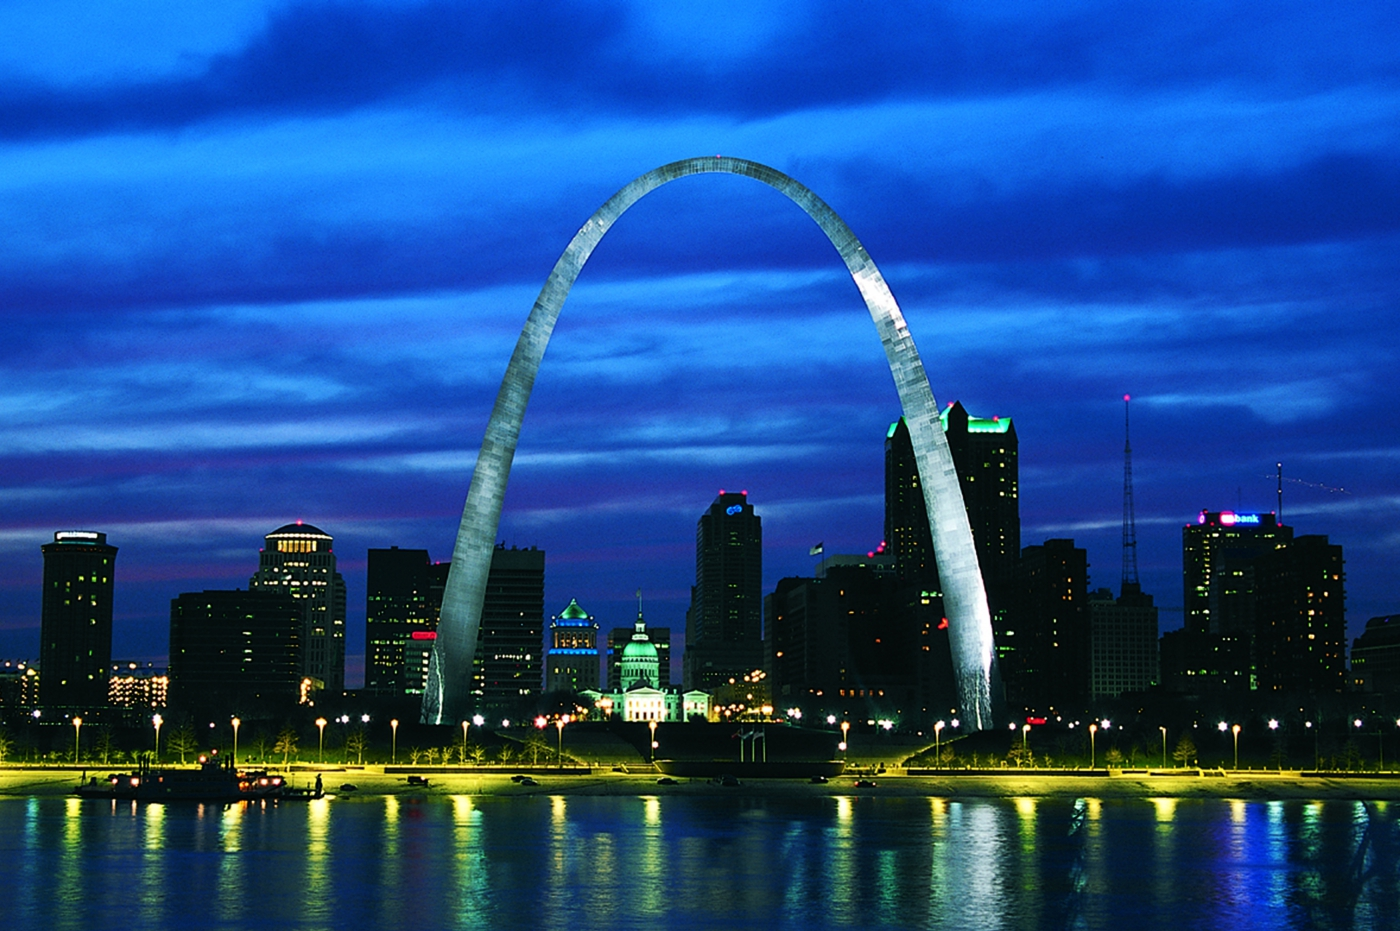 A symbol of America's westward expansion, the iconic Gateway Arch in St. Louis is the country's tallest monument.